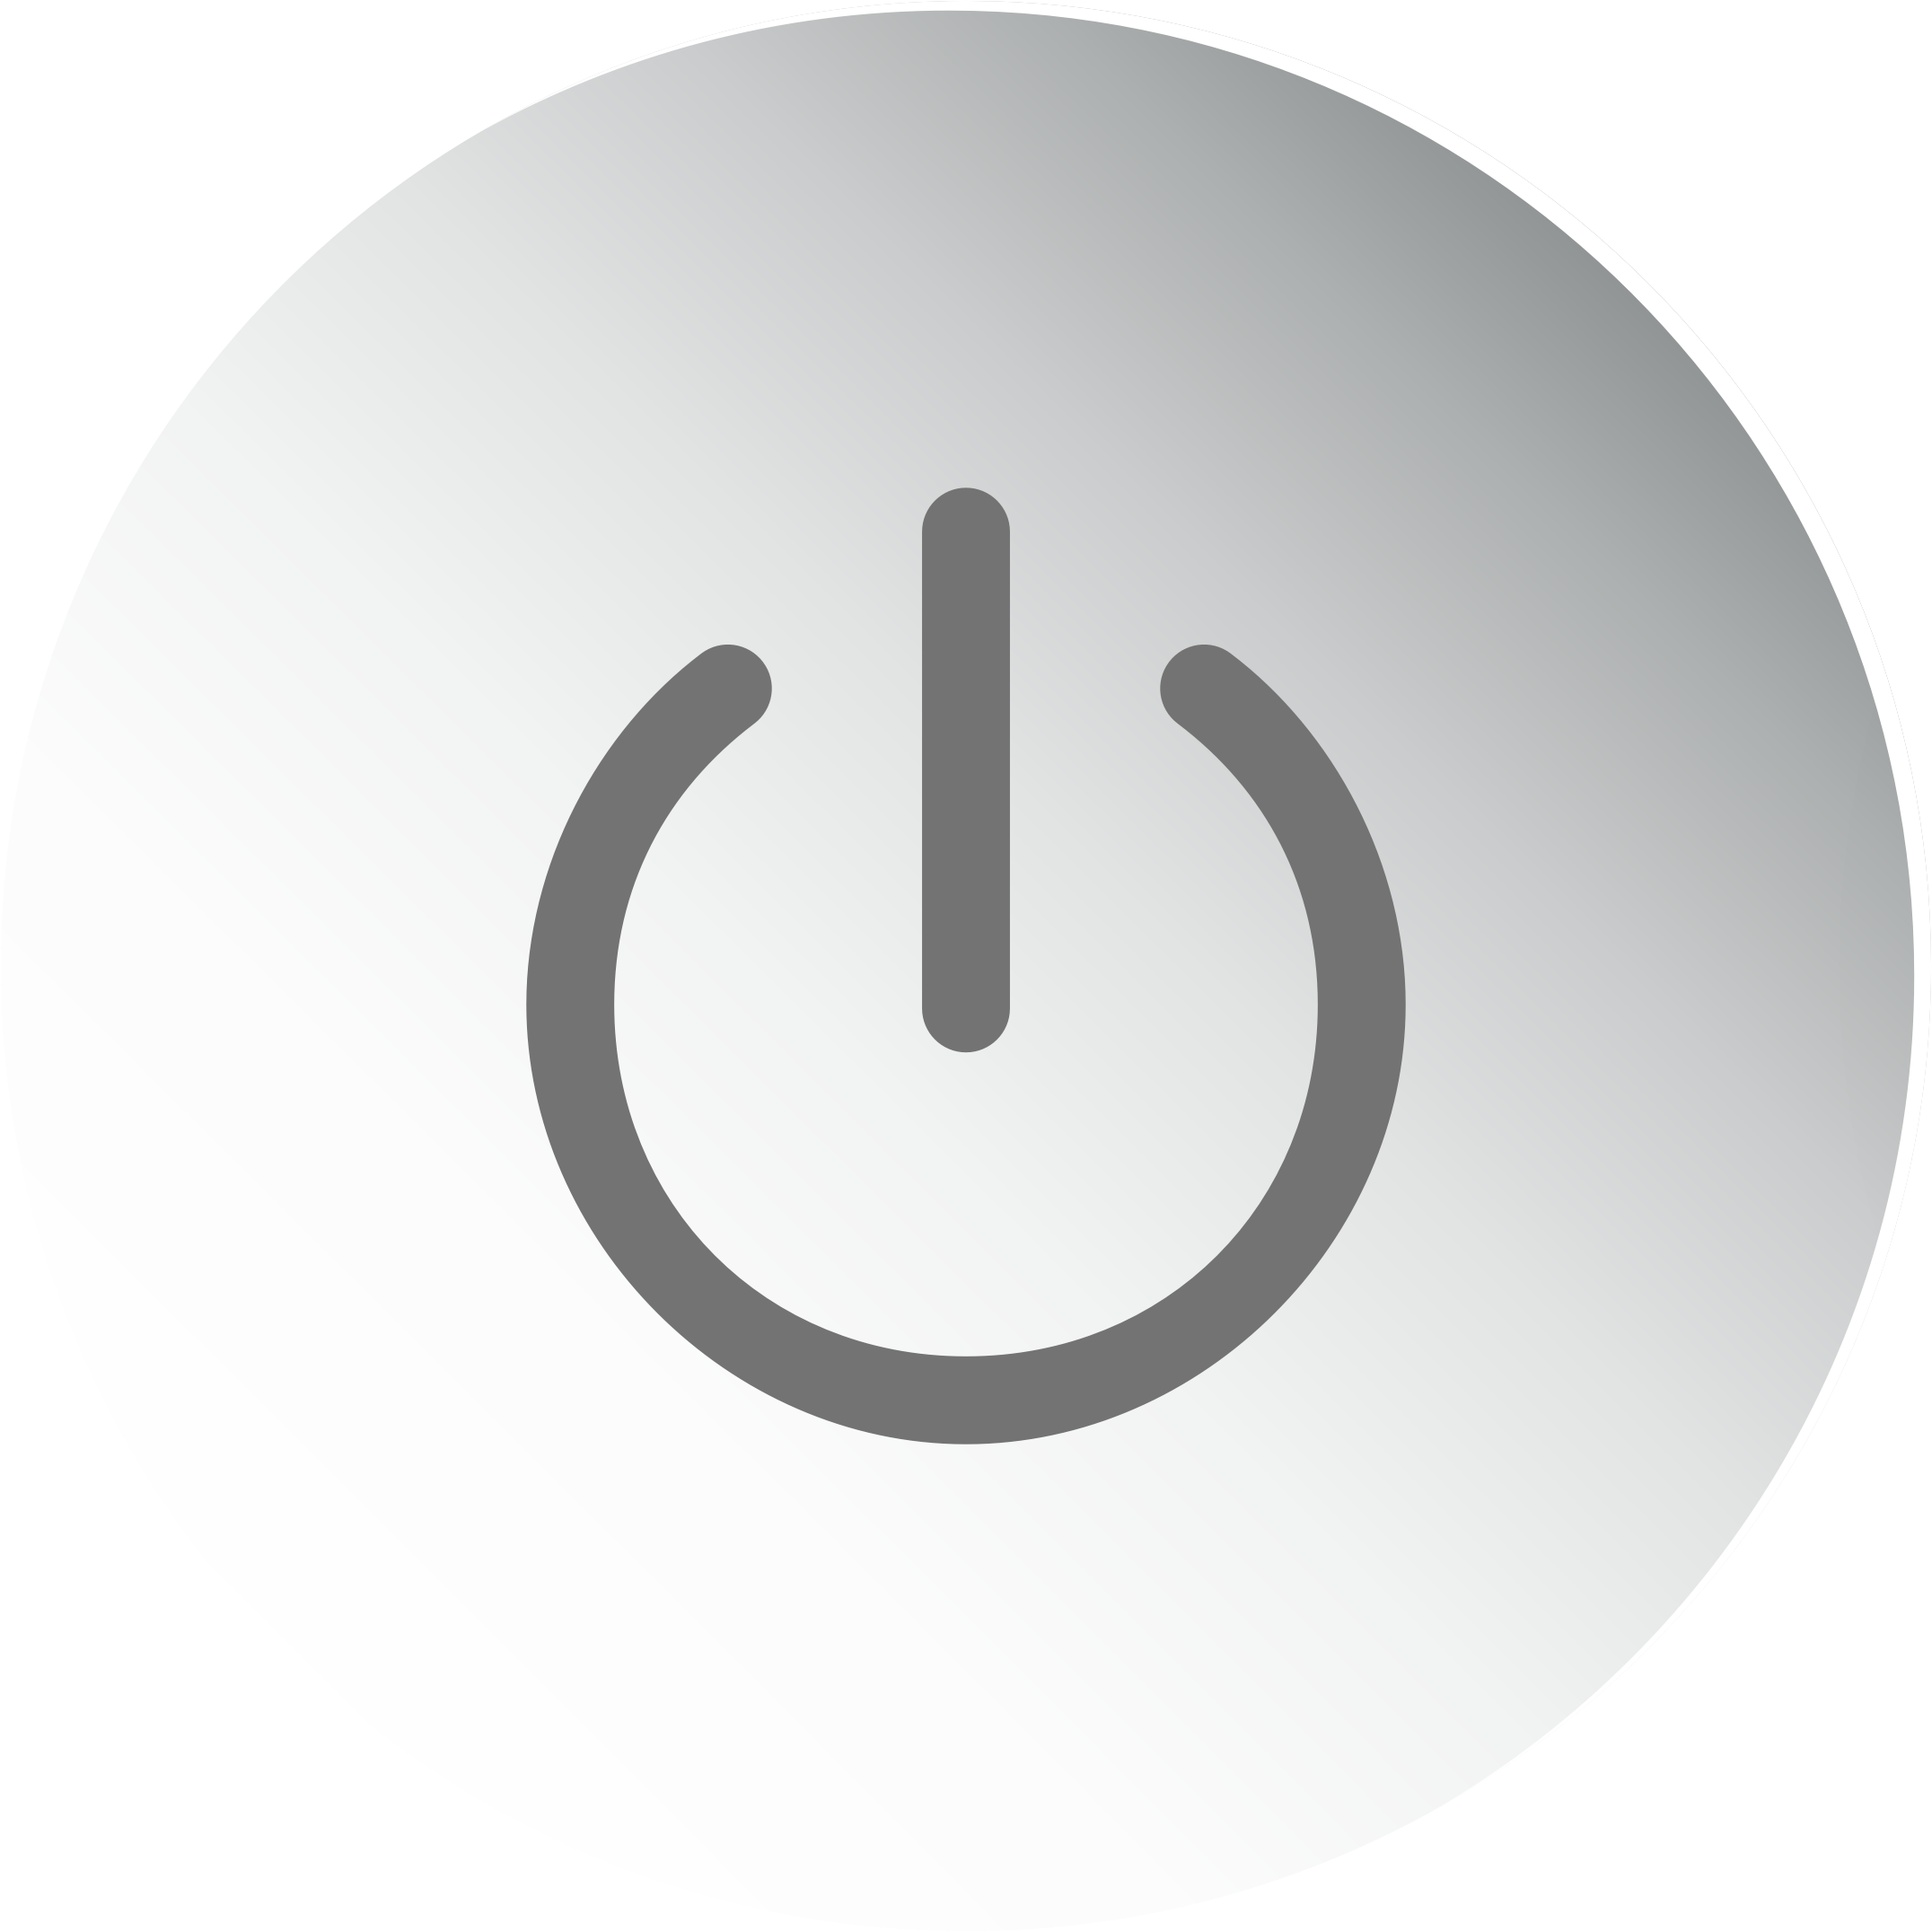 Power button transparent png. Icon no background icons